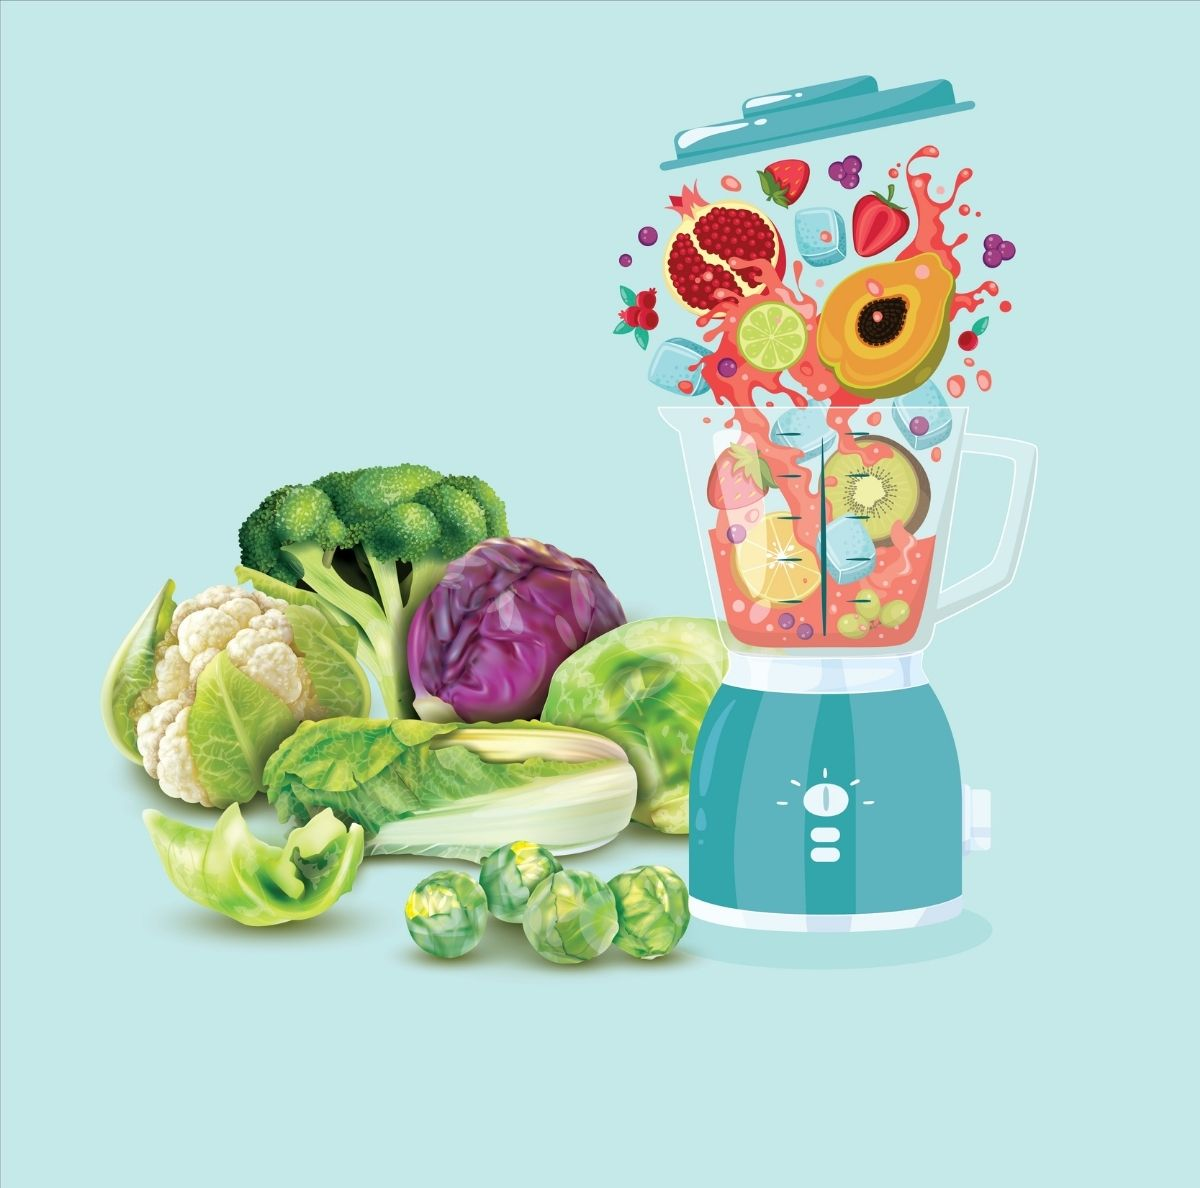 Can comfortably process hard vegetables and fruits